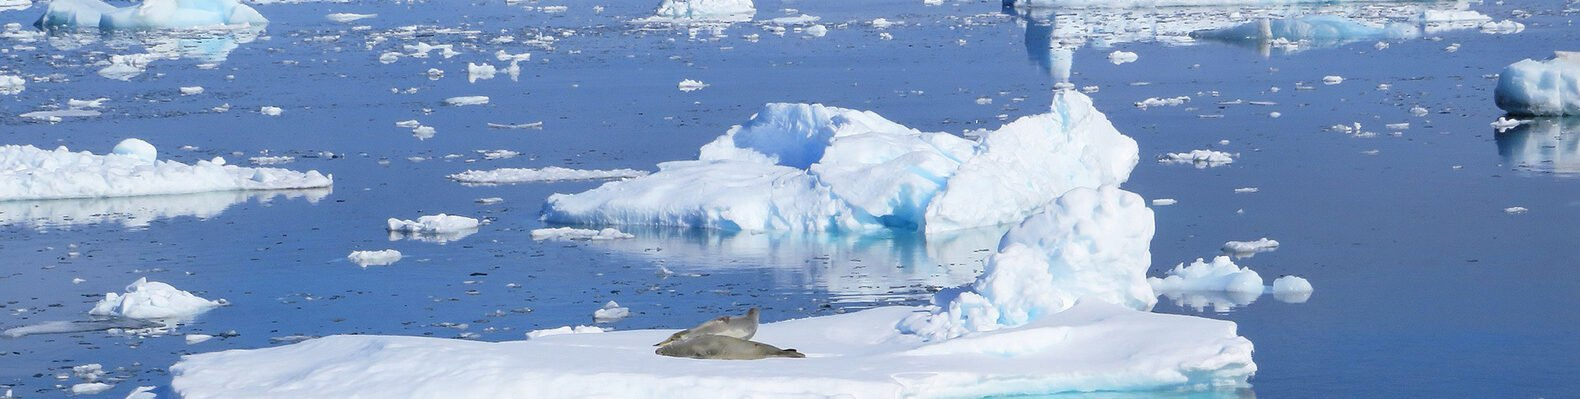 a blue sea with ice floes and two seals on a center ice floe